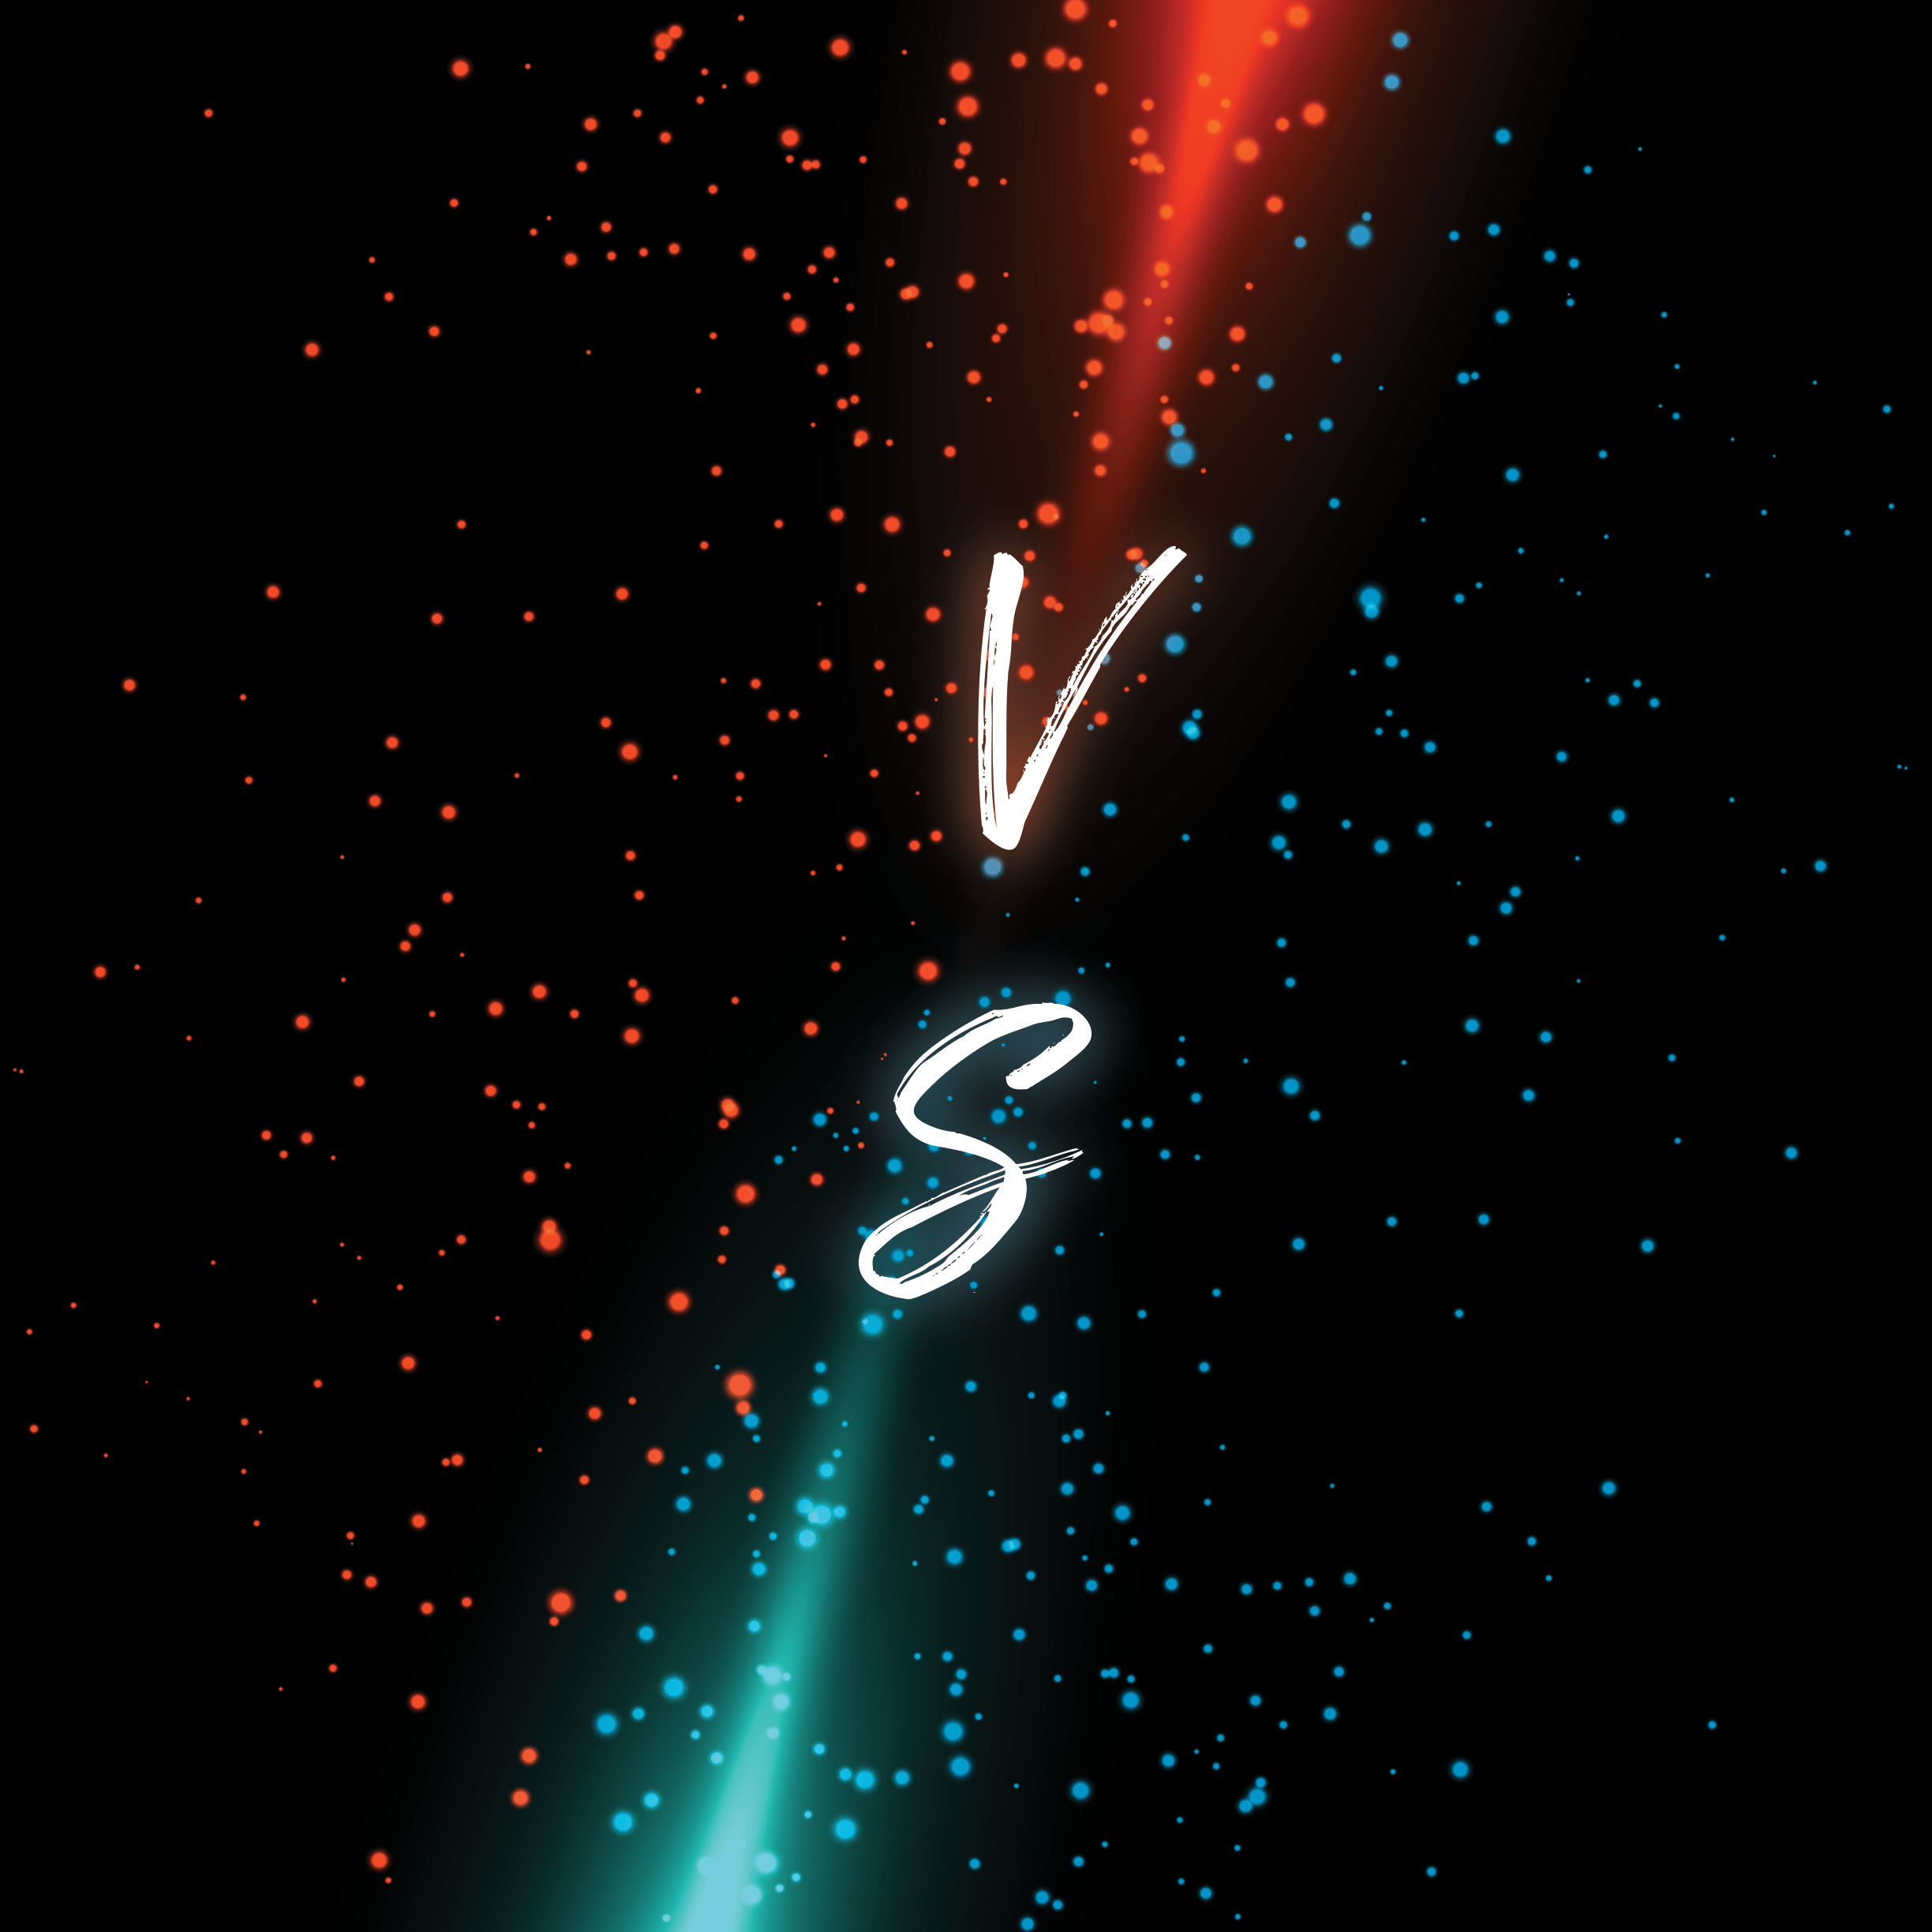 Versus red and blue background with liquid drops 2448 x 2448